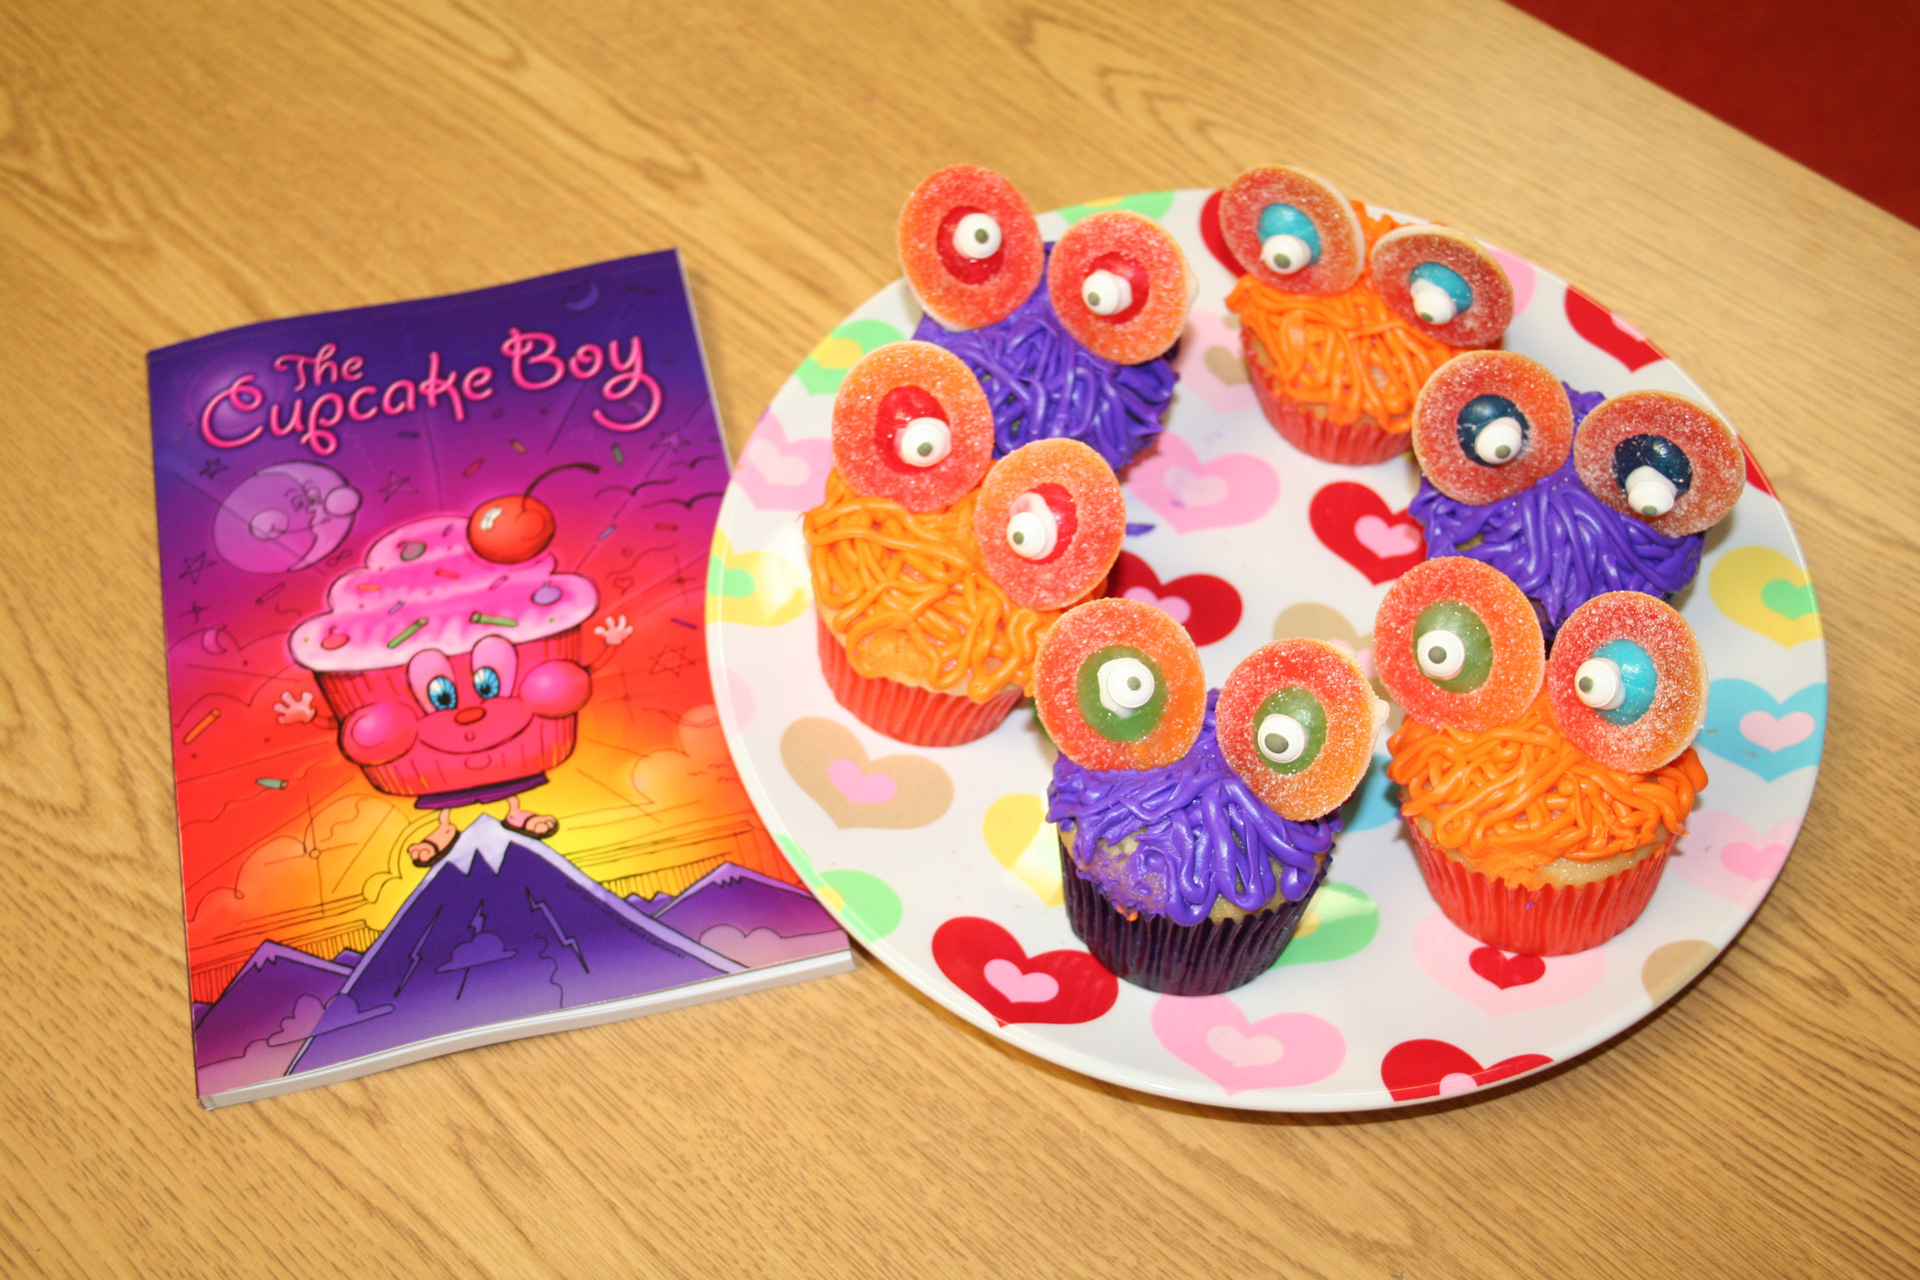 School class photo for The Cupcake Boy with Amy Belle Elementary